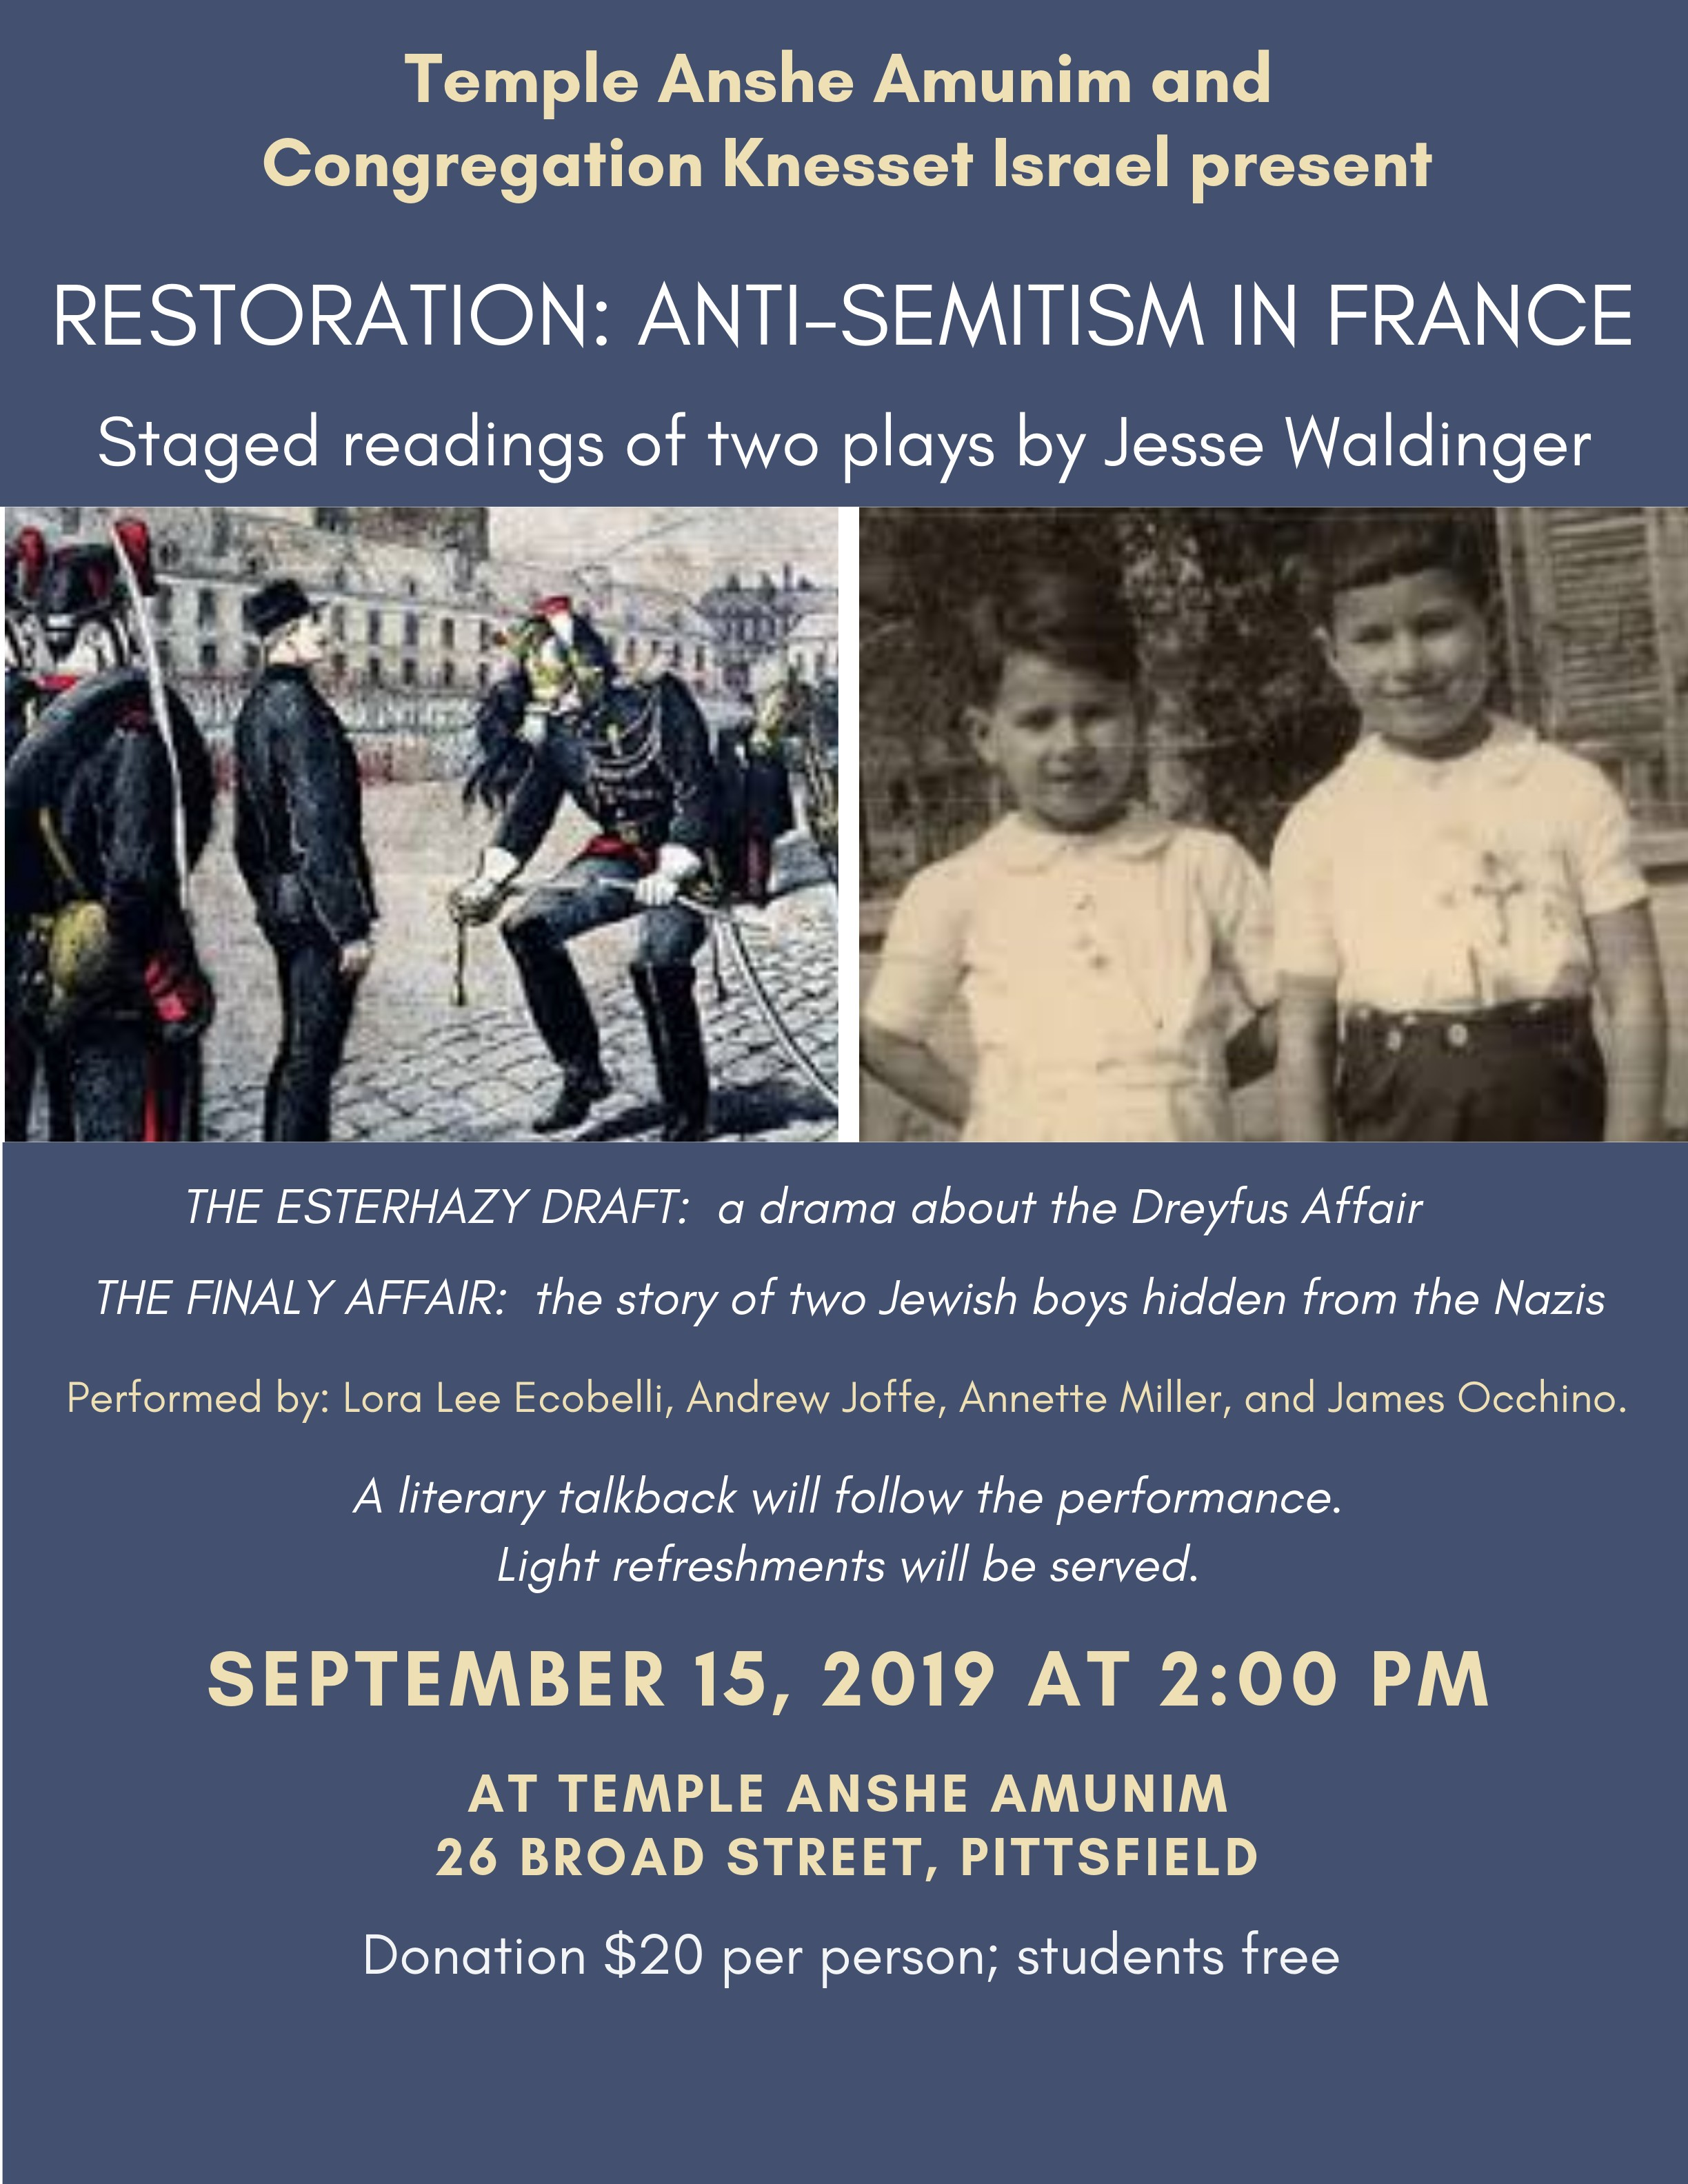 Banner Image for Restoration: Anti-semitism in France (Co-sponsored by Temple Anshe Amunim and Congregation Knesset Israel)